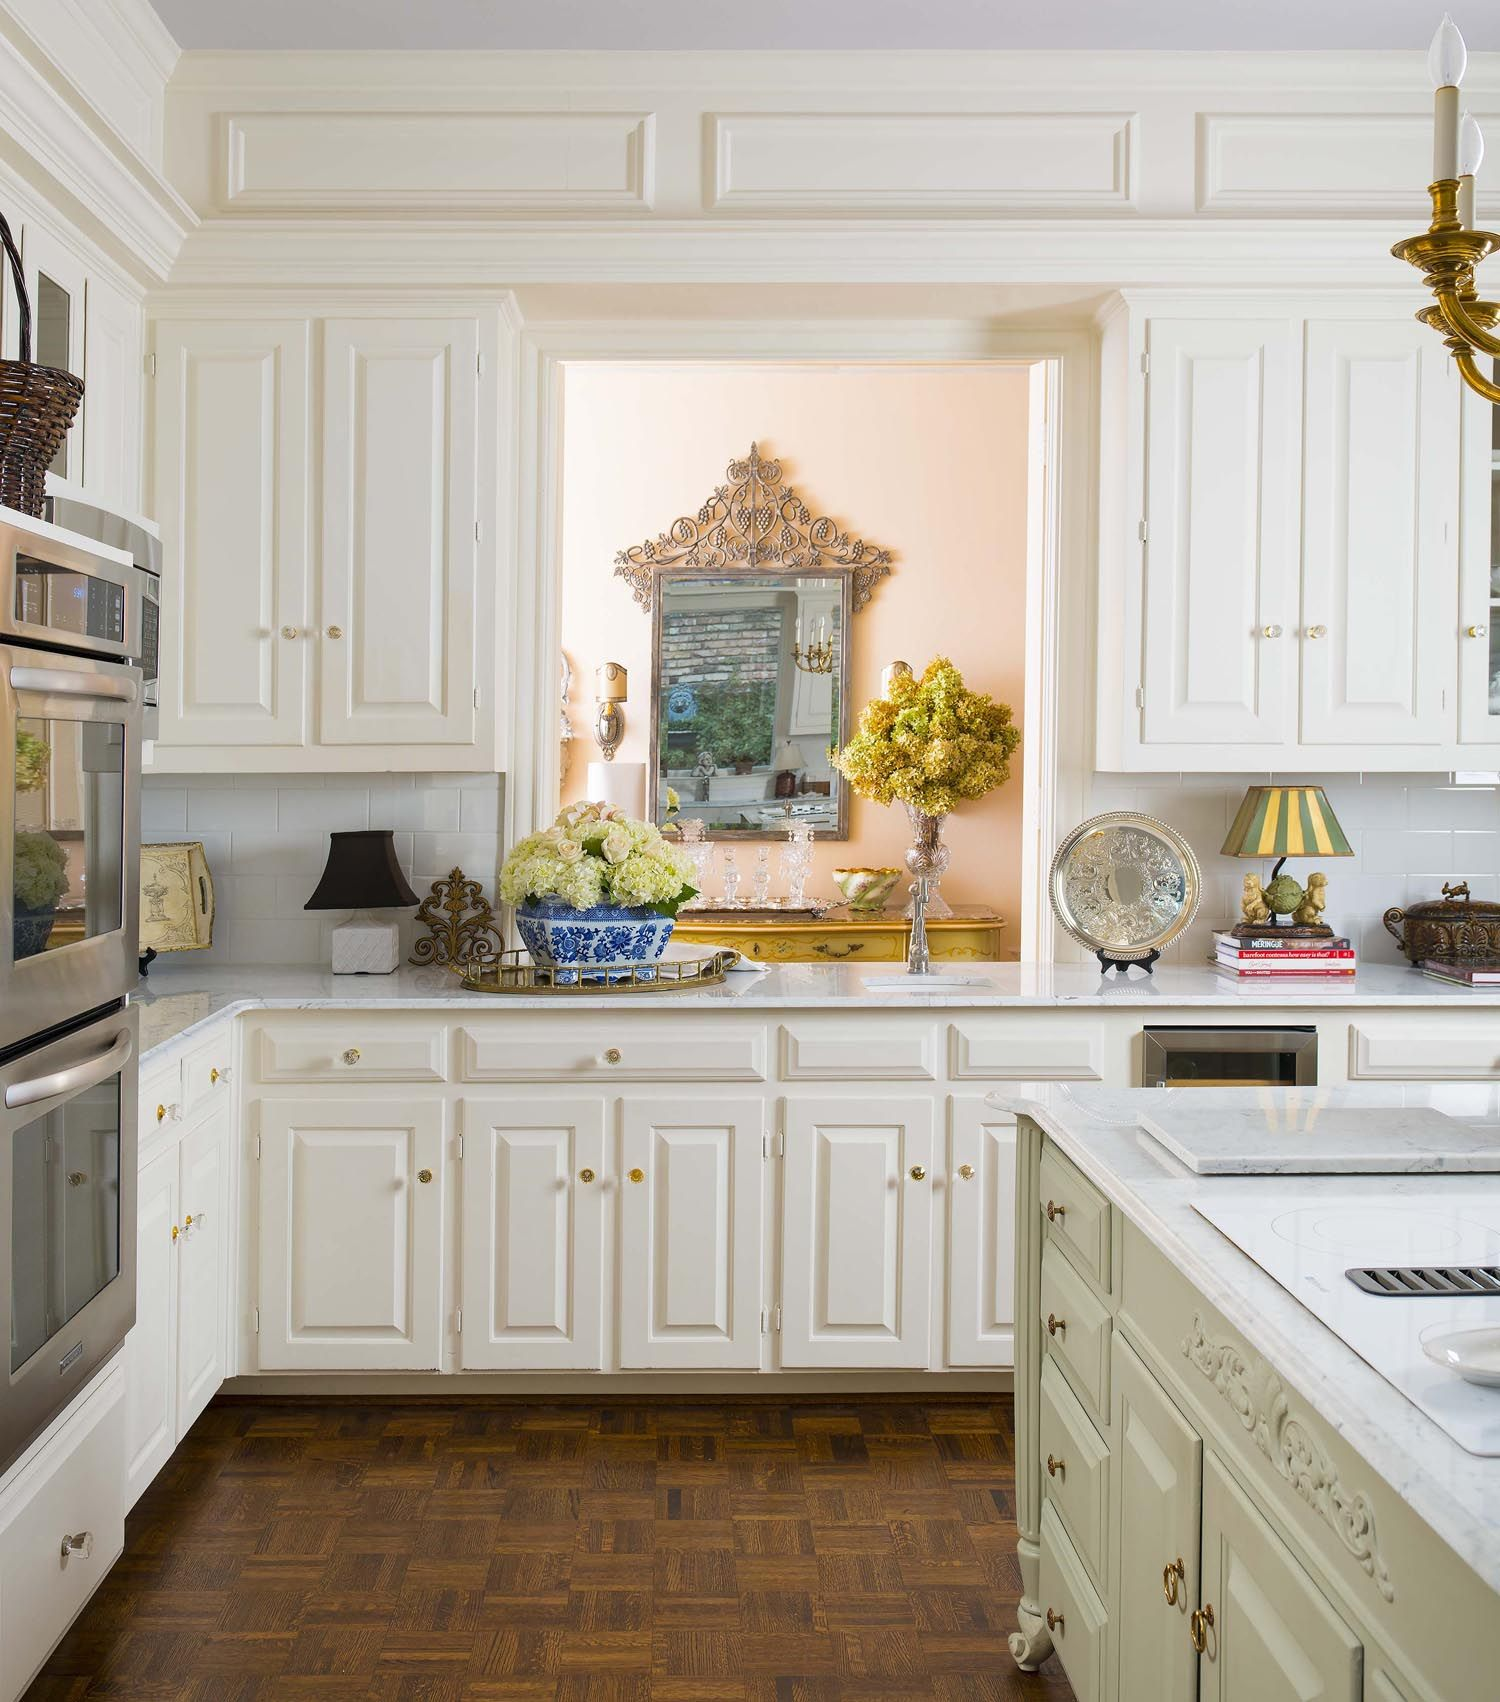 Gallery Deborah Levy Designs Kitchen Inspirations Design French Country Design